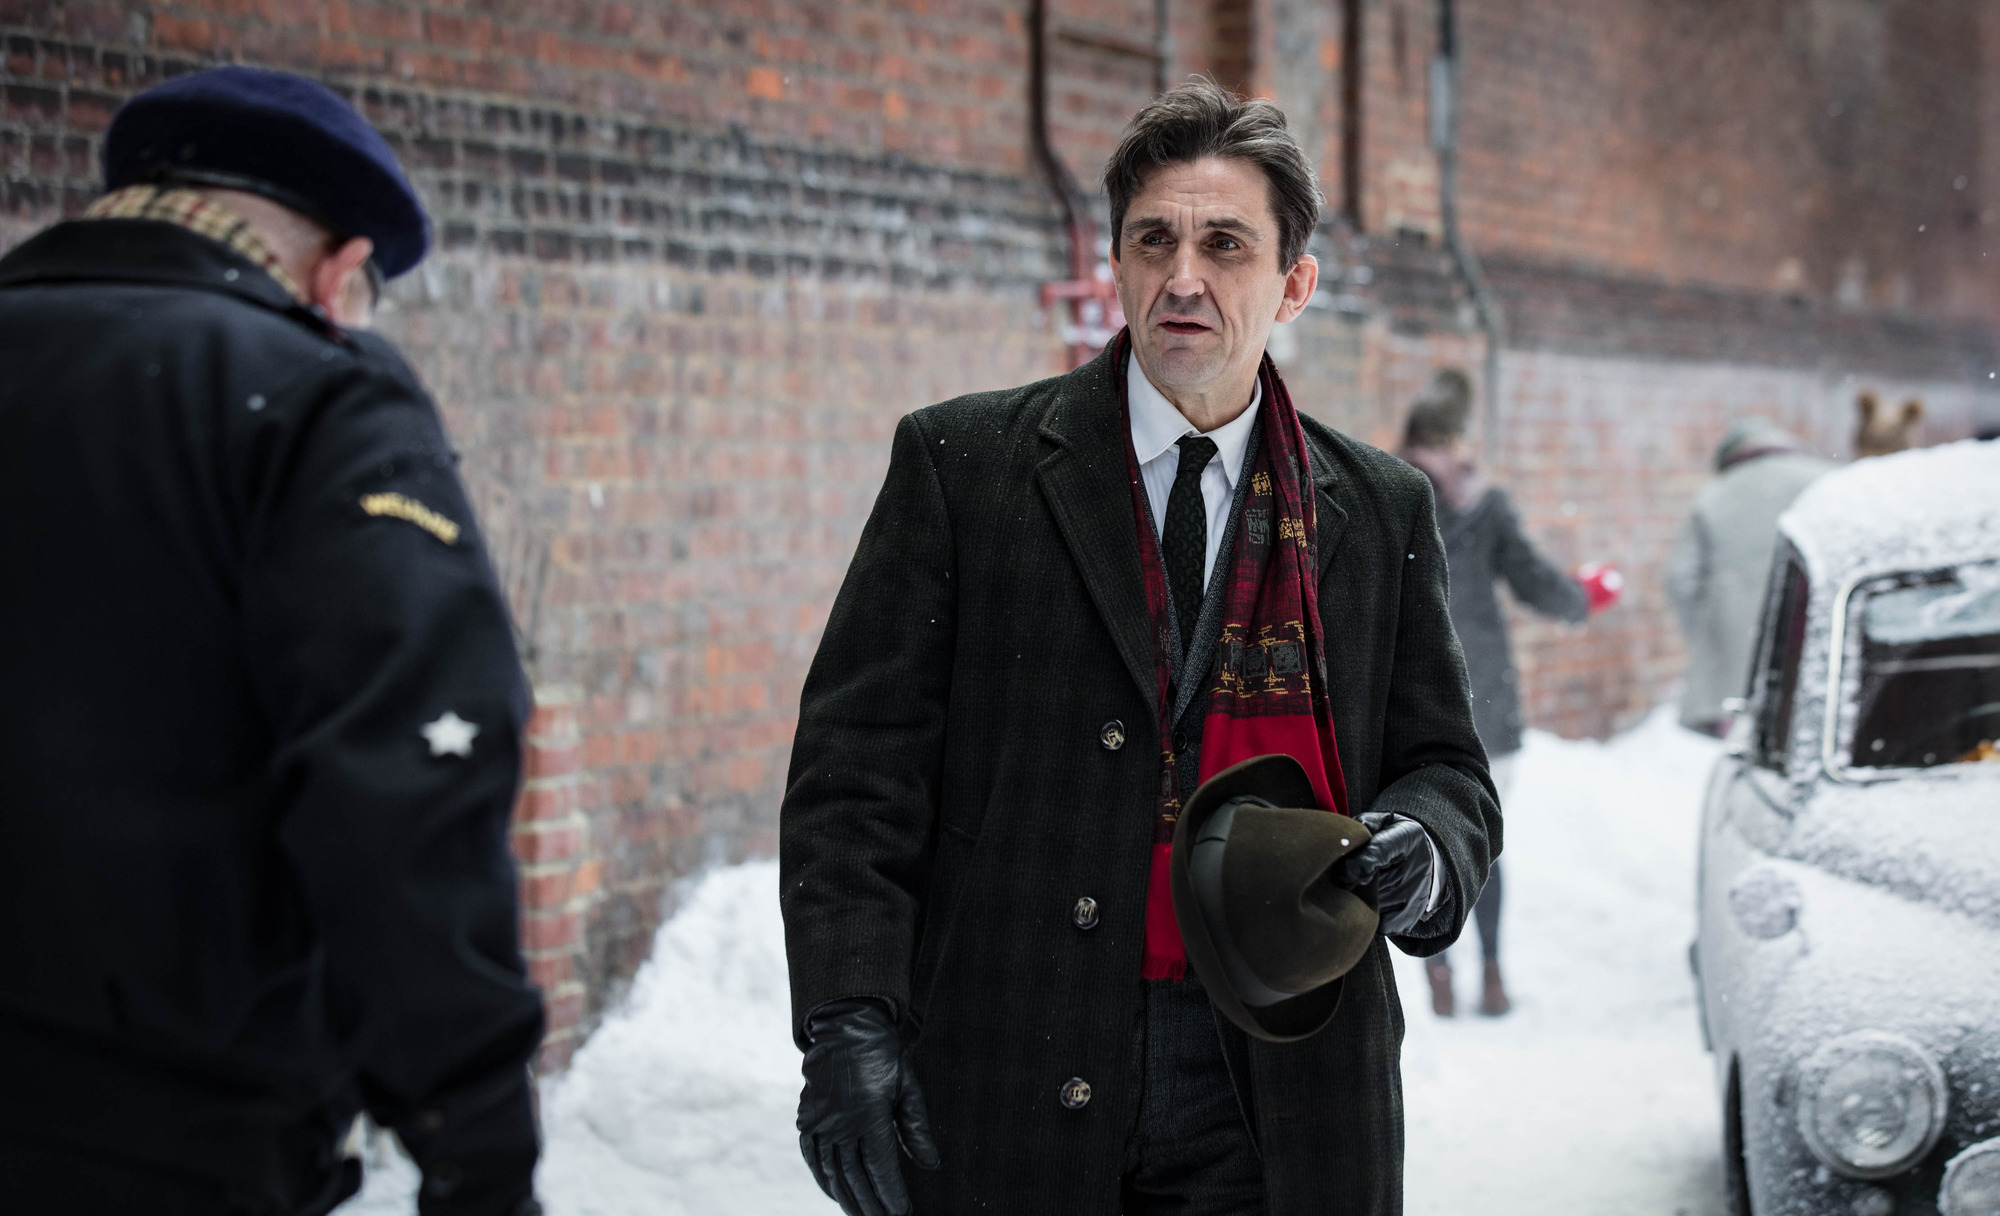 Dr Turner (STEPHEN McGANN) in the Call the Midwife 2017 Christmas special